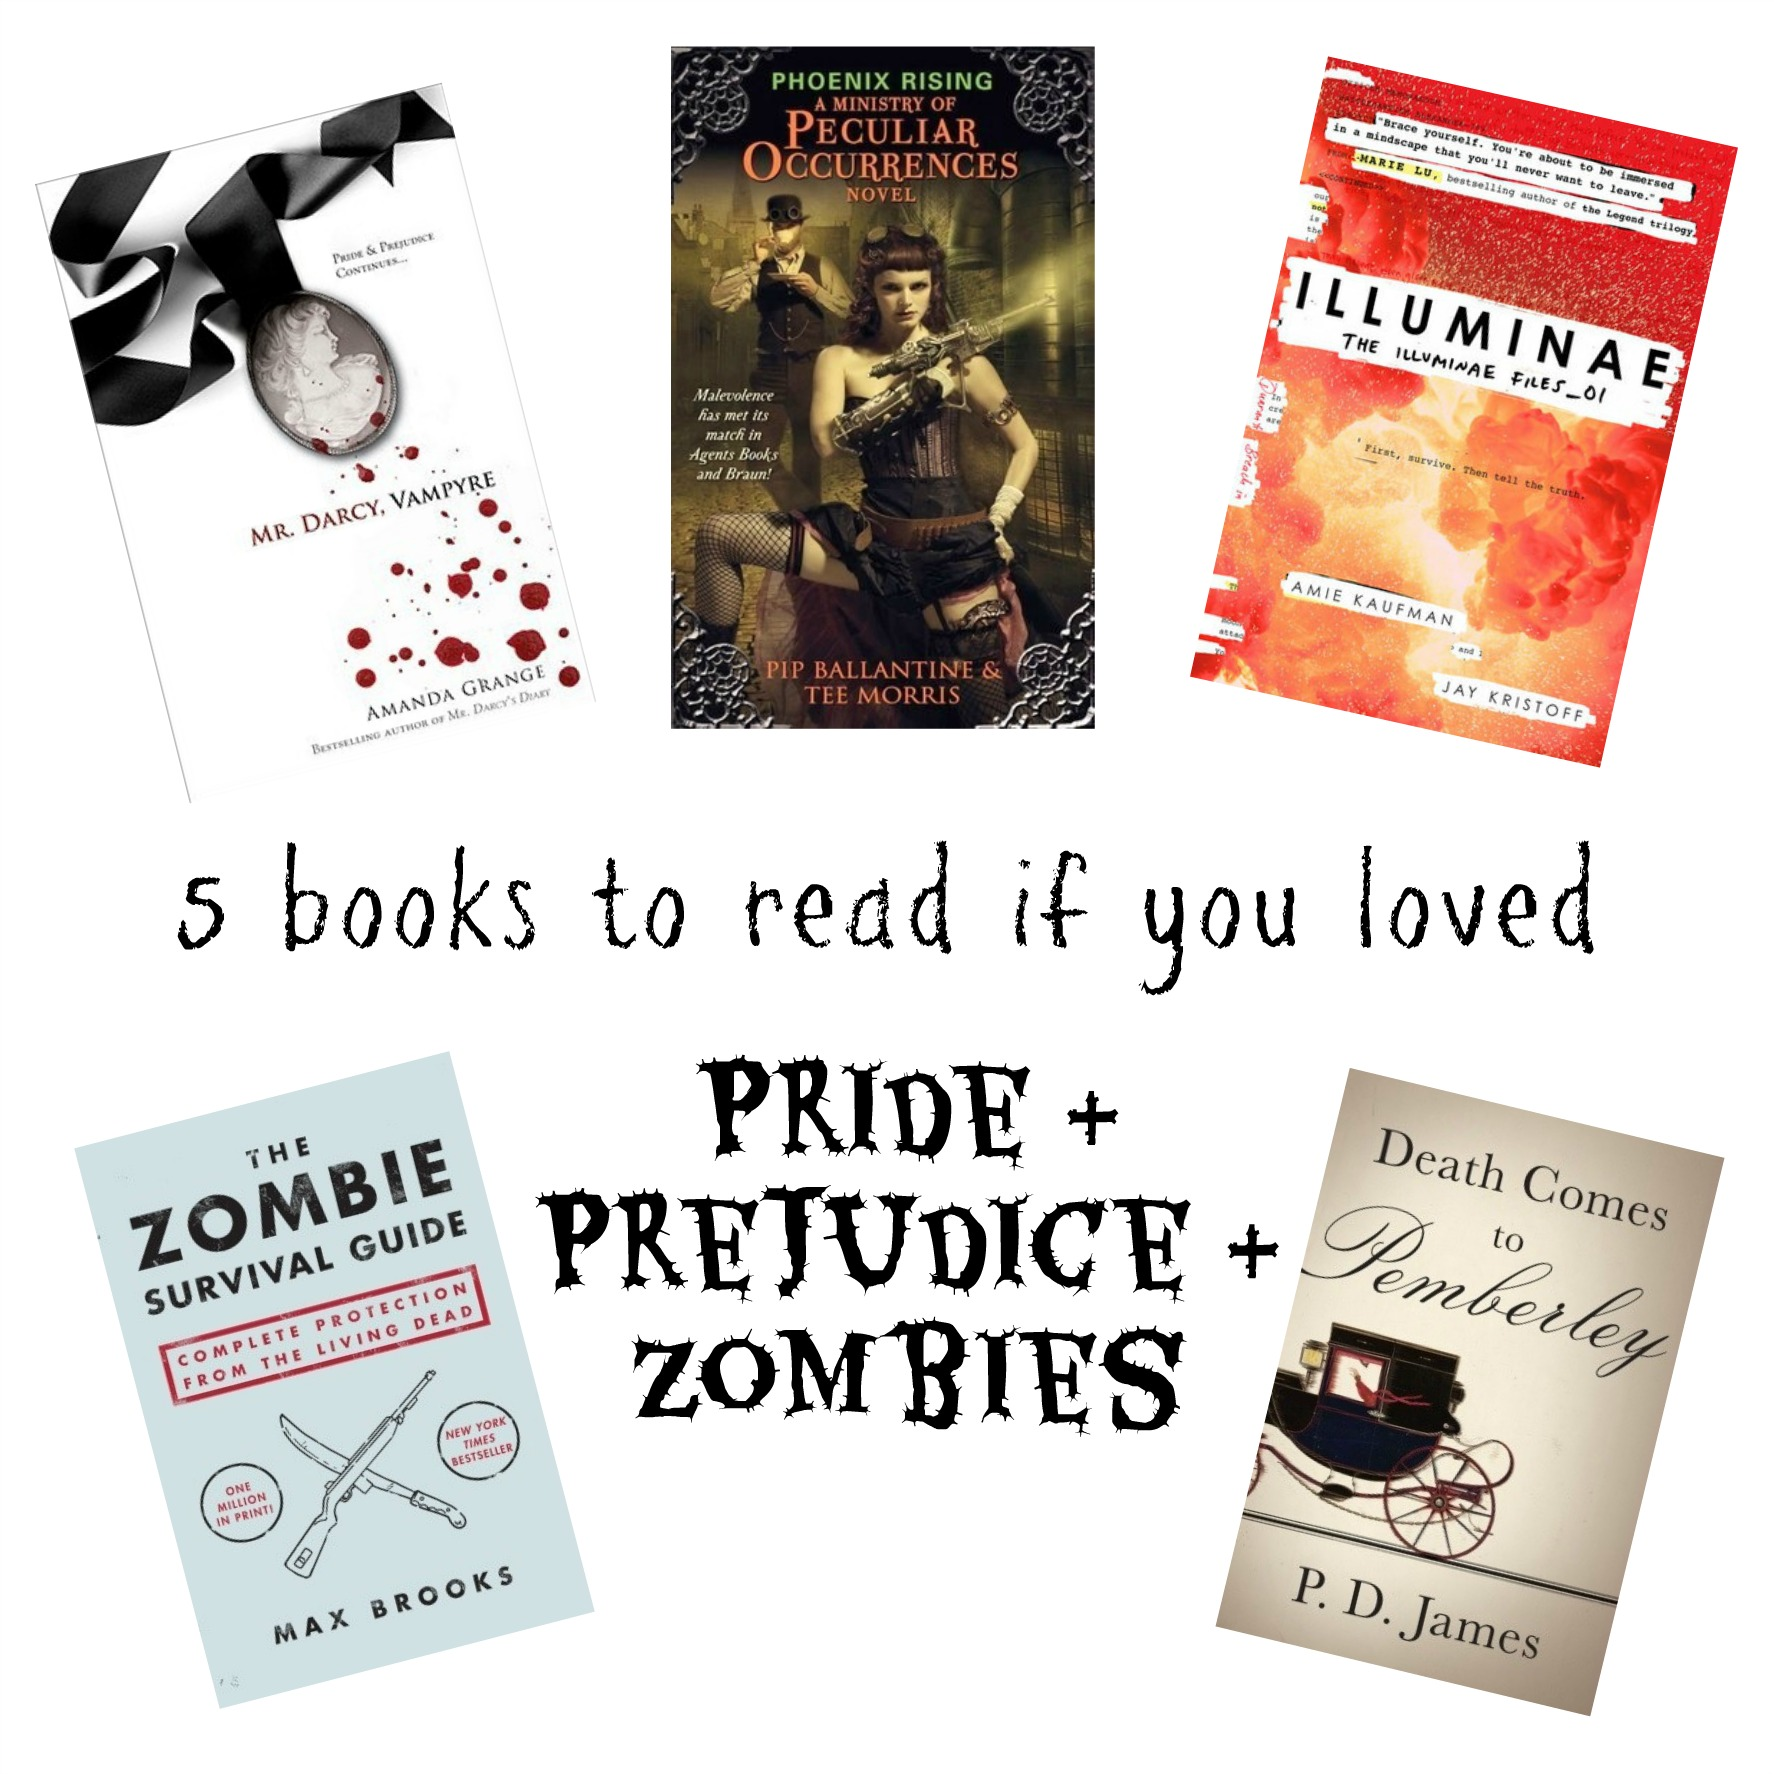 Five books to read if you loved 'Pride and Prejudice and Zombies'